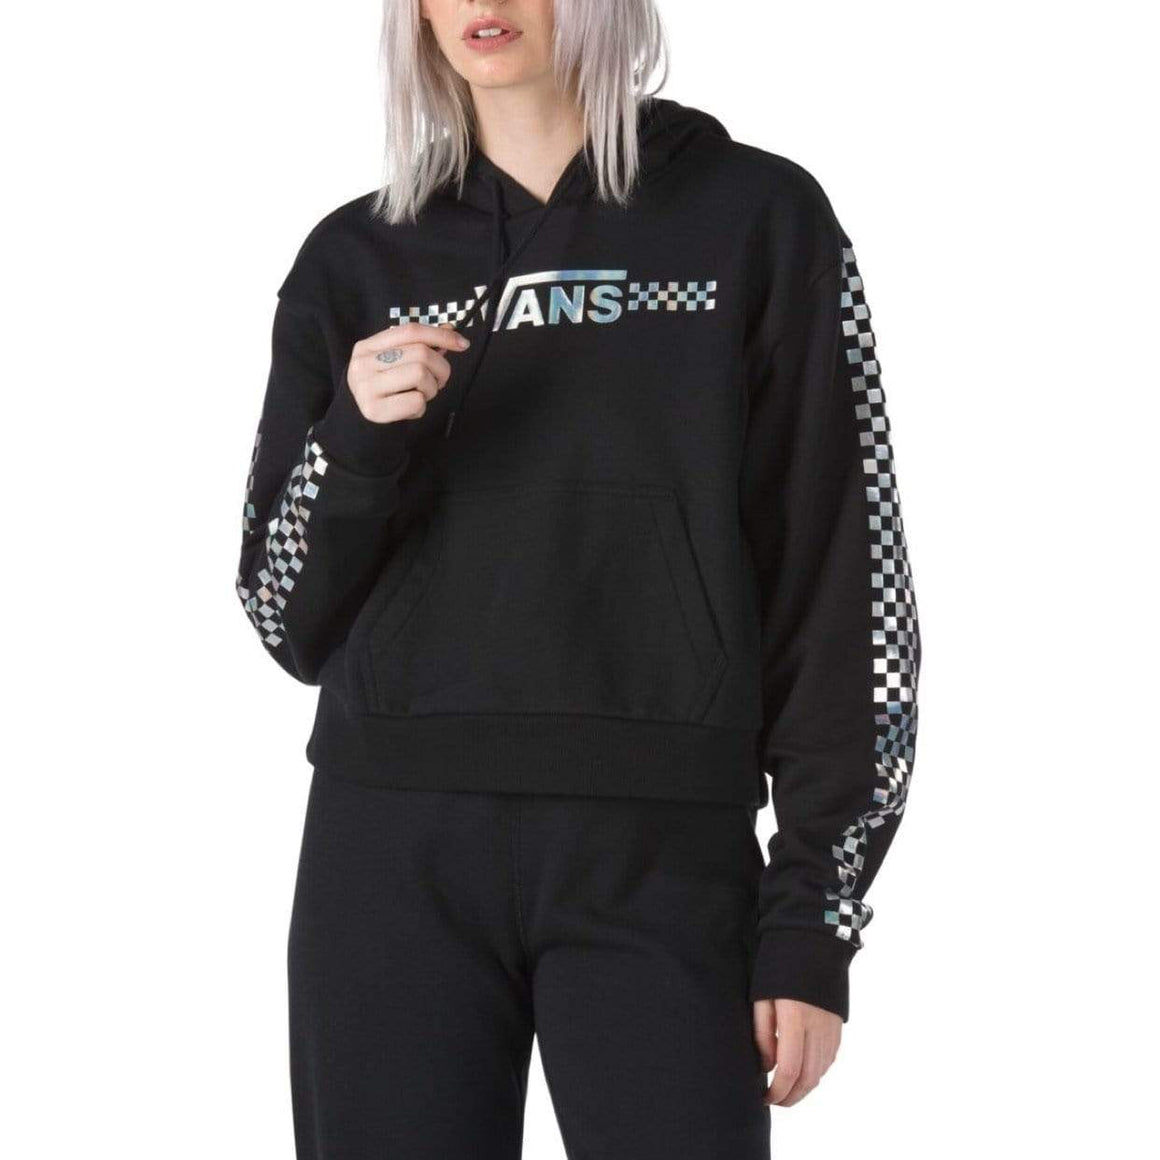 VN0A4DUKBLK - VANS Junior Girls Shine It Iridescent Crop Hoodie - Black Sweatshirt Vans